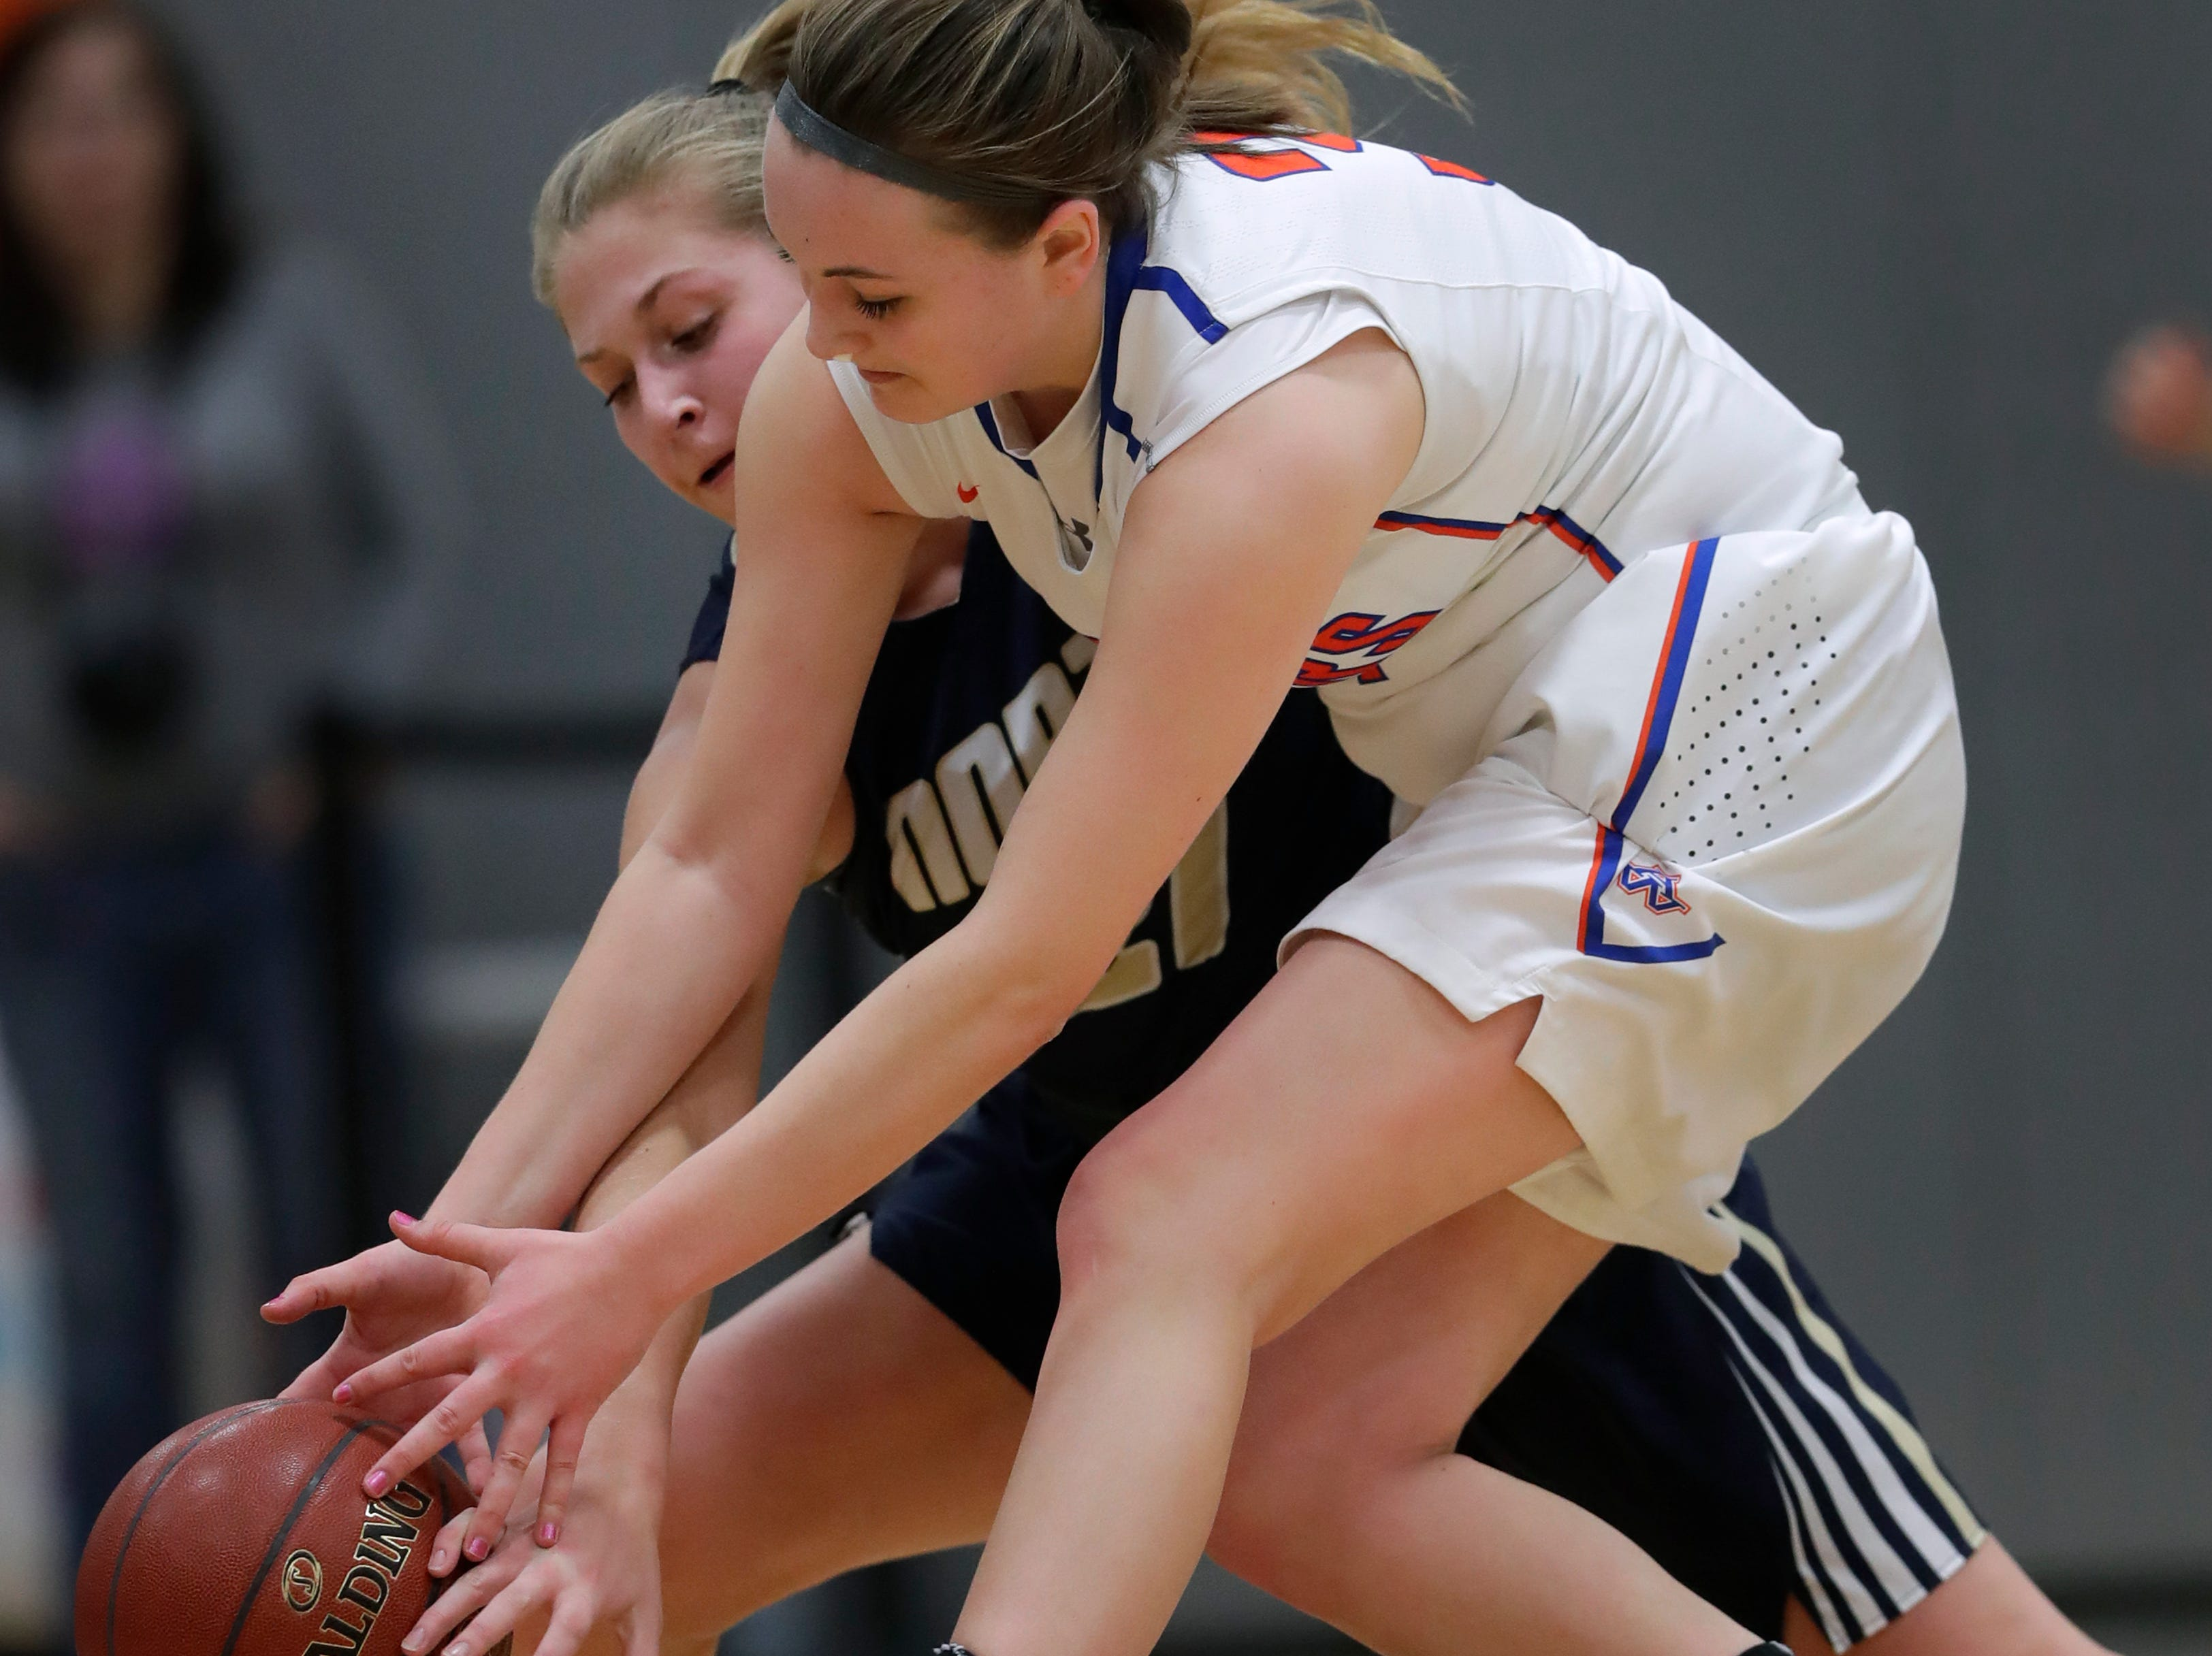 Appleton North High School's Lilli Van Handel, left, battles for a loose ball against Appleton West High School's Christy Fortune during their girls basketball game Friday, January 25, 2019, at Appleton West High School in Appleton, Wis. 